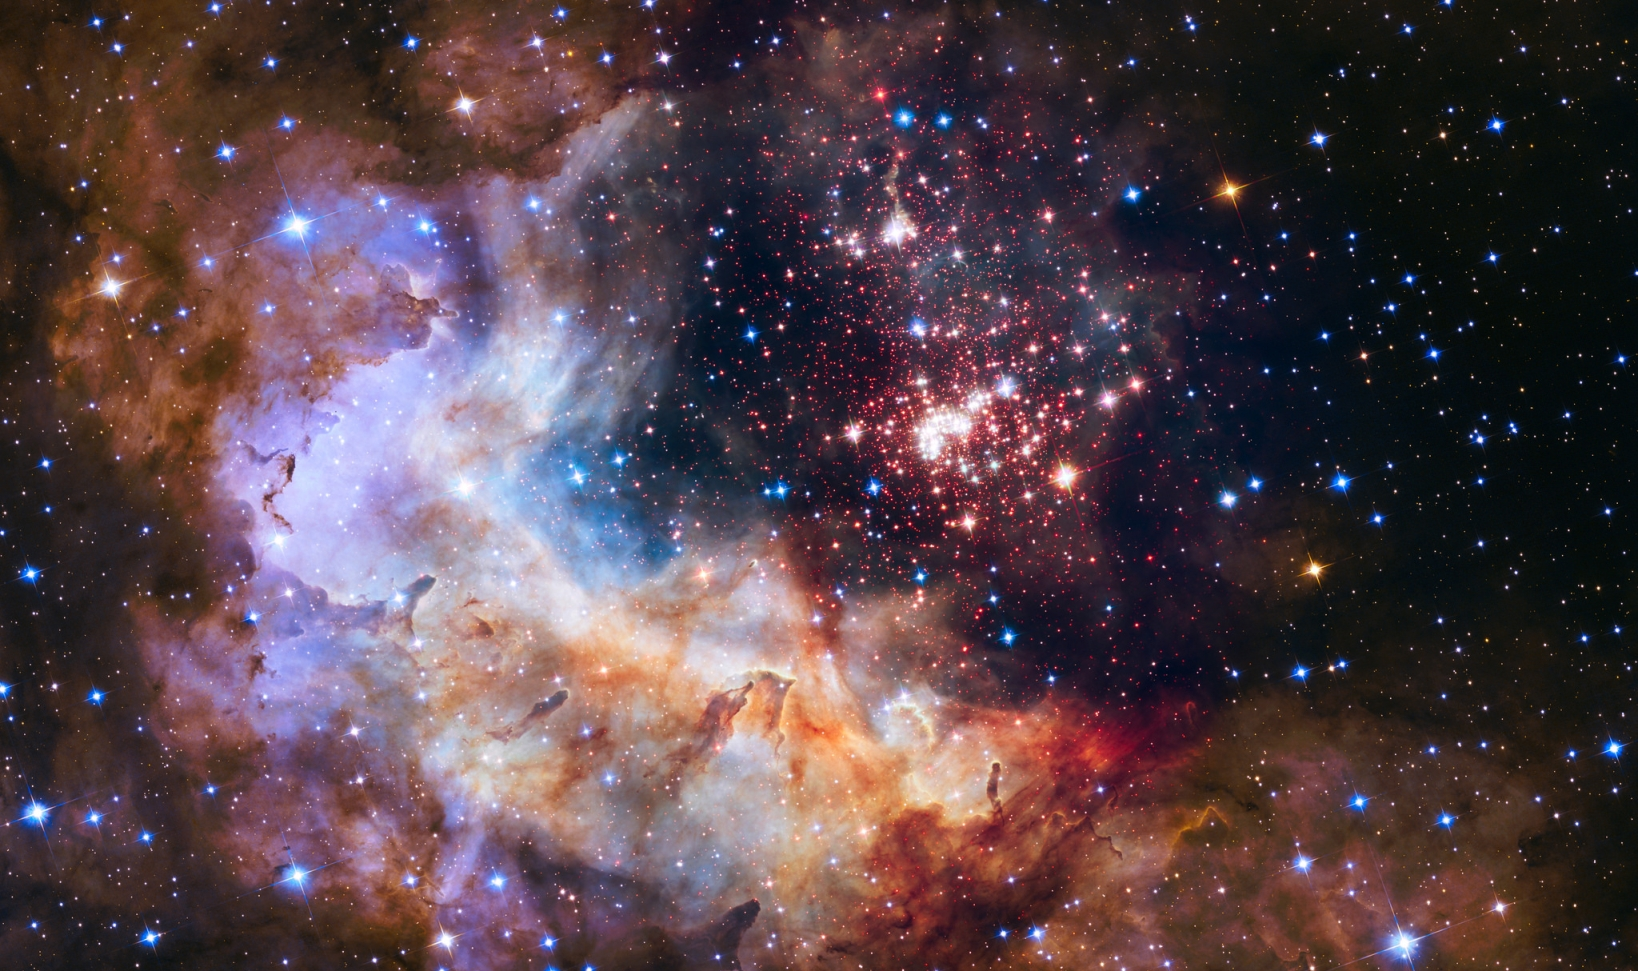 Open Star Cluster Westerlund 2 & Starforming Region Gum 29 via Hubble Heritage on Flickr https://www.flickr.com/photos/hubble-heritage/16635704113/